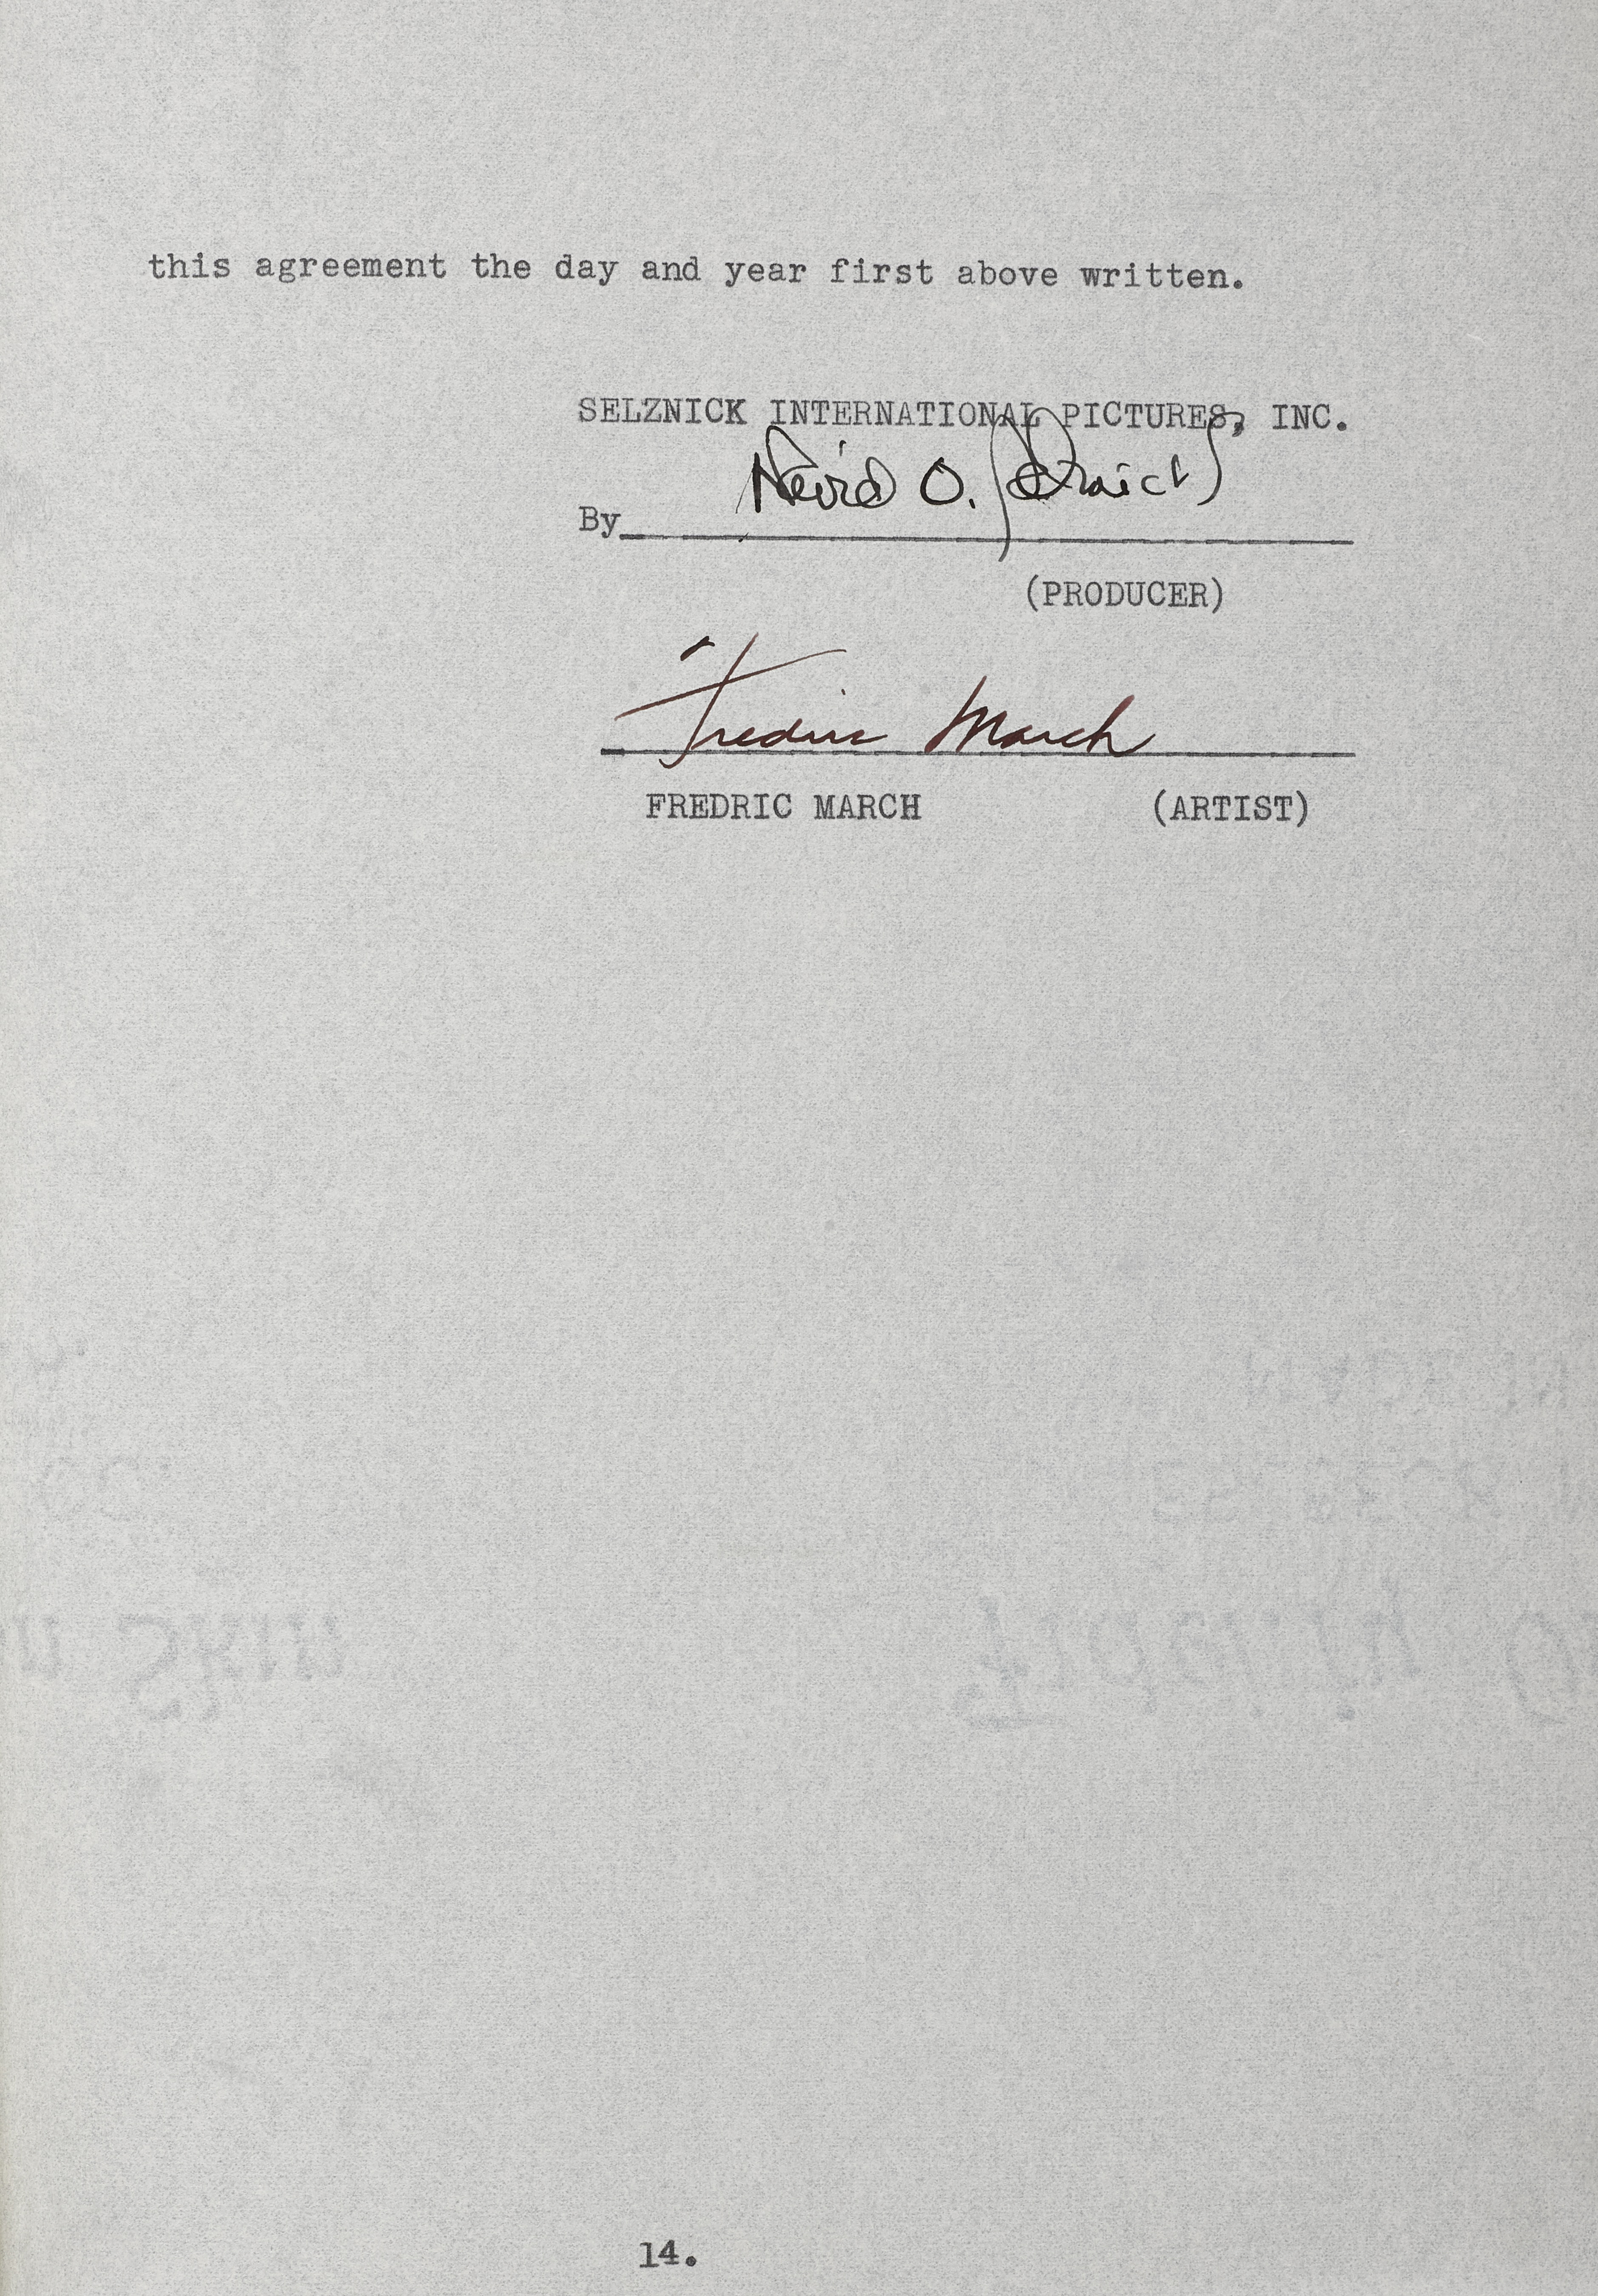 Lot 1022 - A Fredric March signed contract for A Star is Born